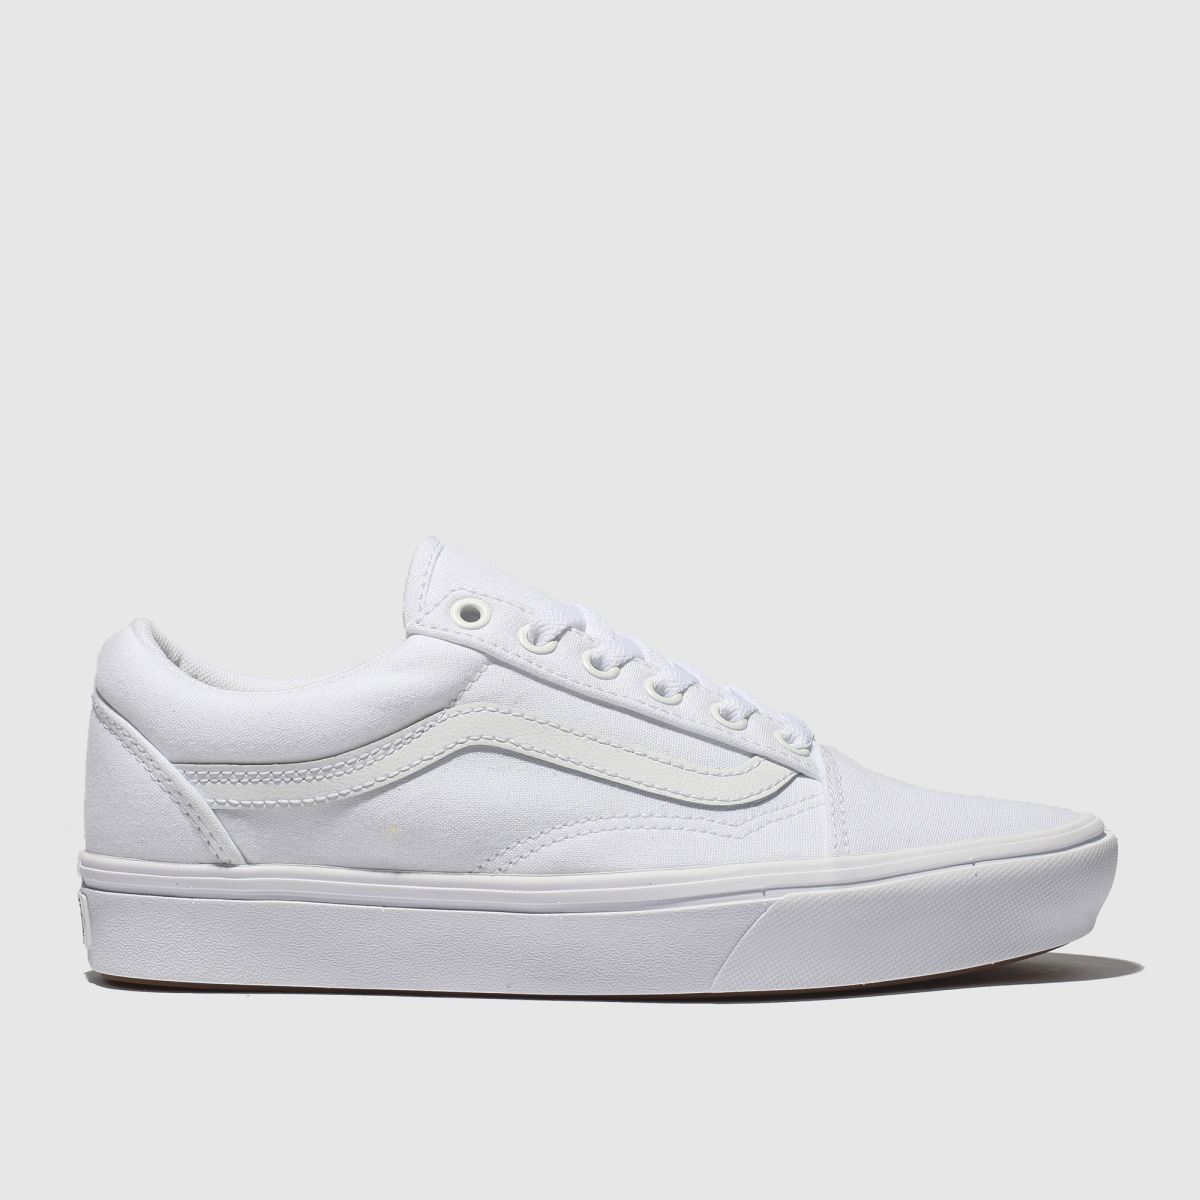 Vans White Comfycush Old Skool Trainers